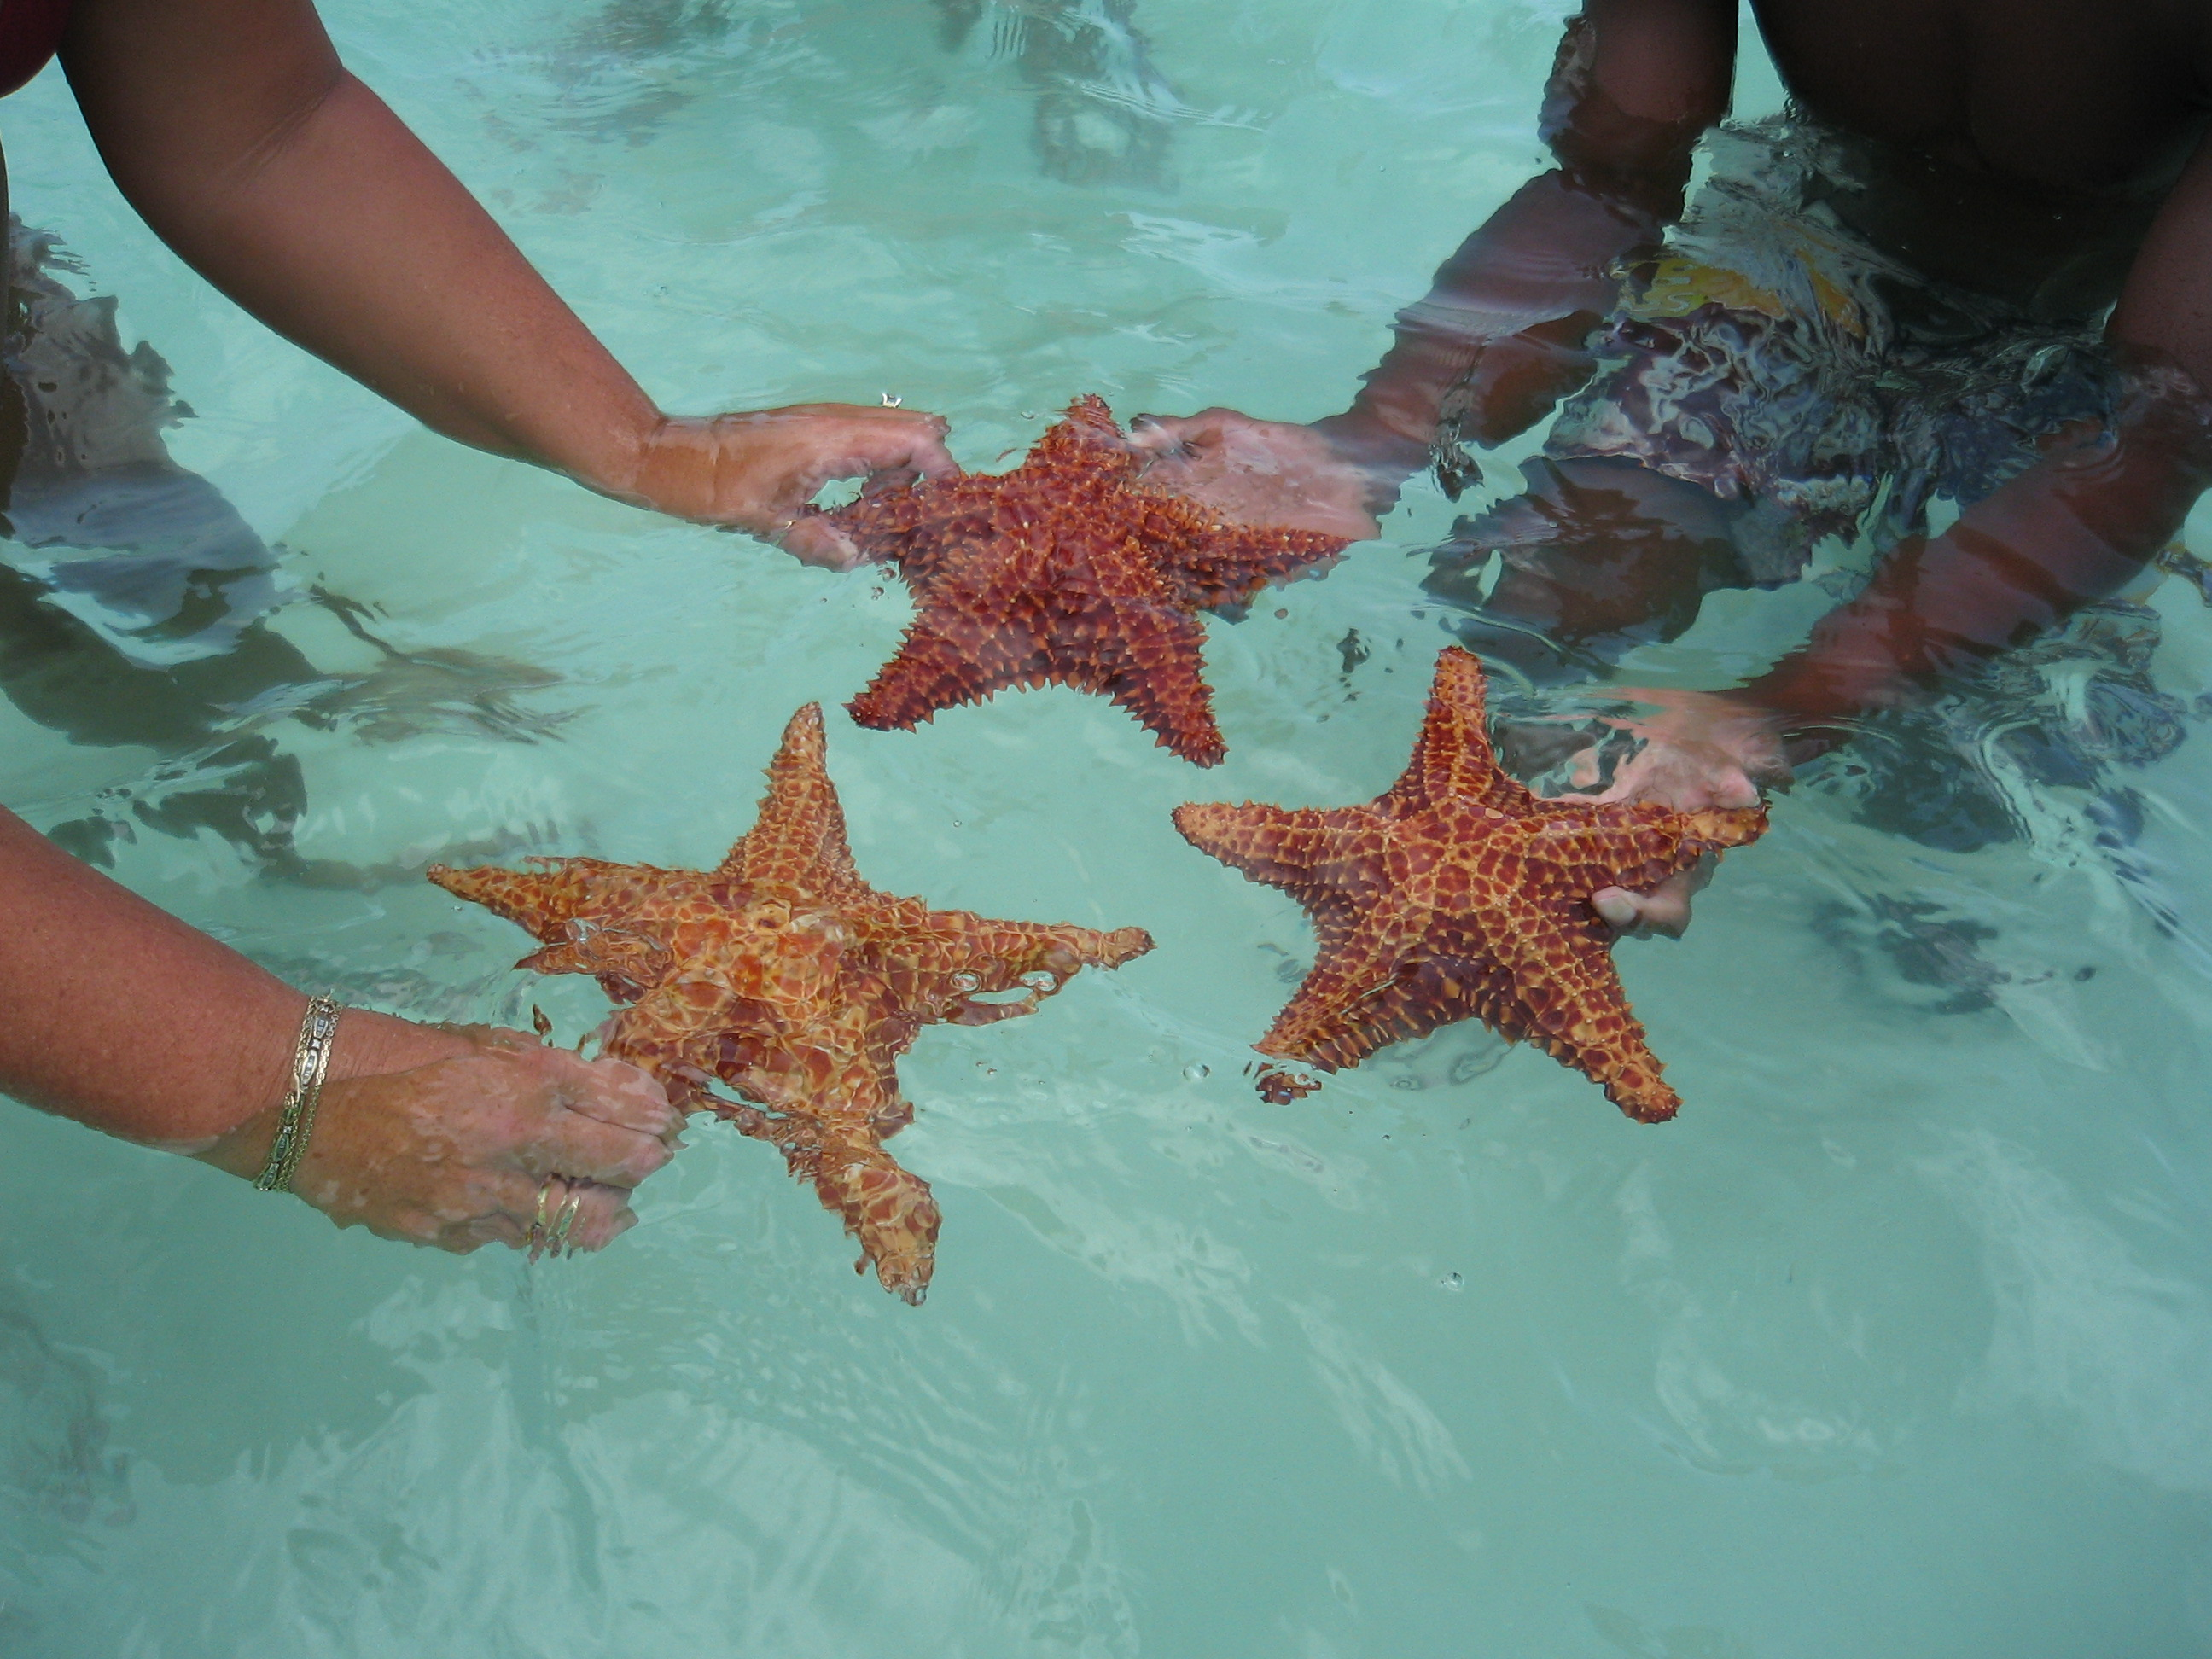 3 starfish from the natural swimming pool